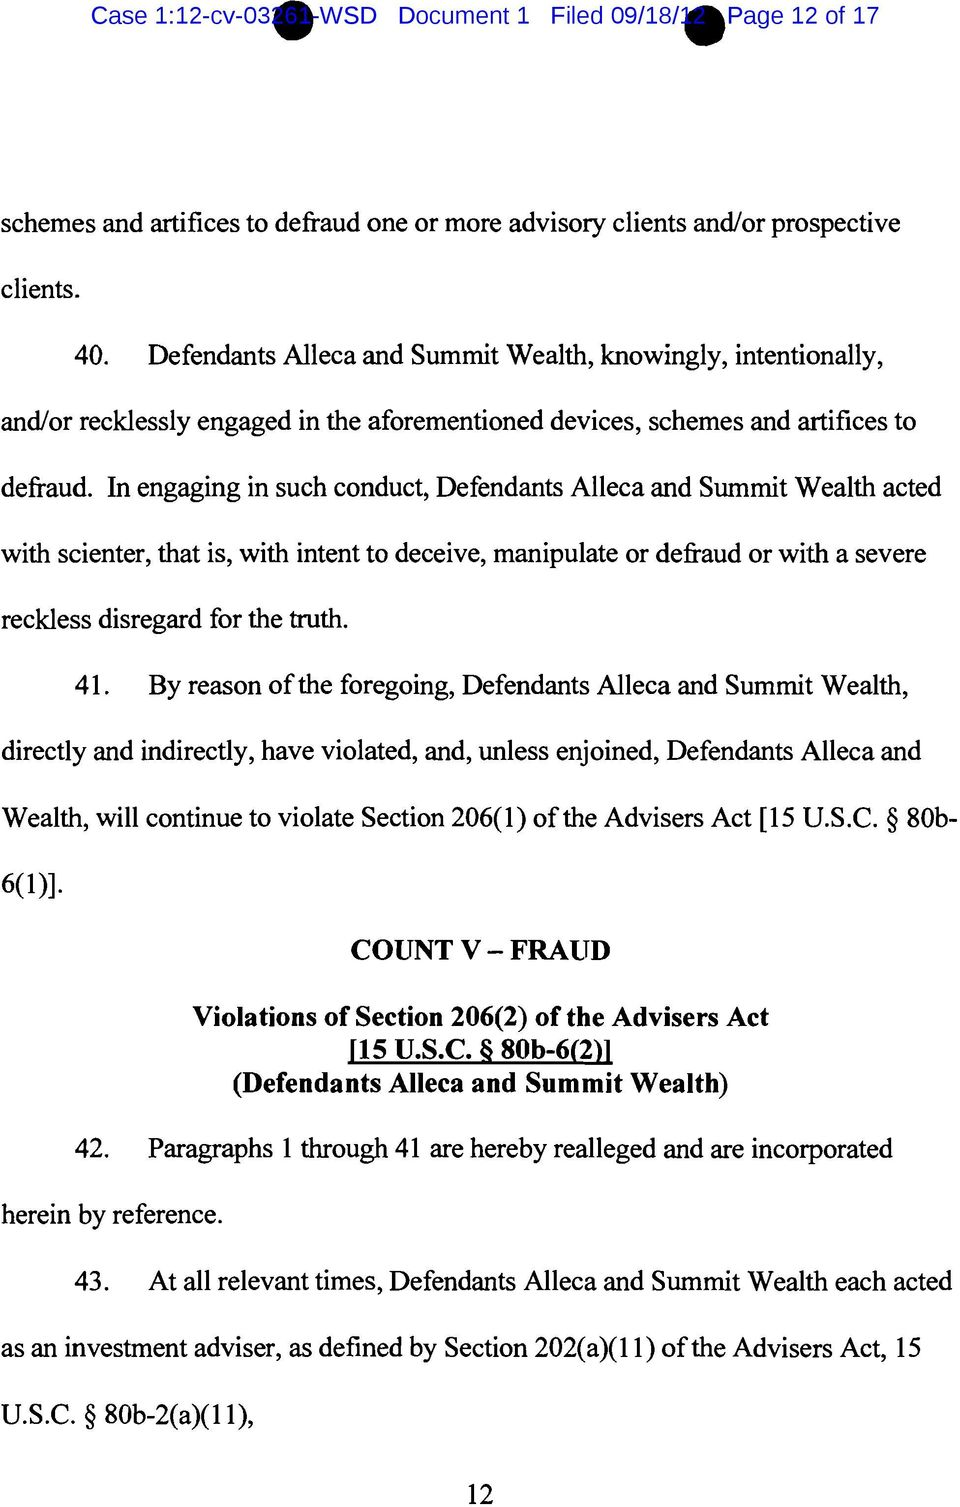 In engaging in such conduct, Defendants Alleca and Summit Wealth acted with scienter, that is, with intent to deceive, manipulate or defraud or with a severe reckless disregard for the truth. 41.